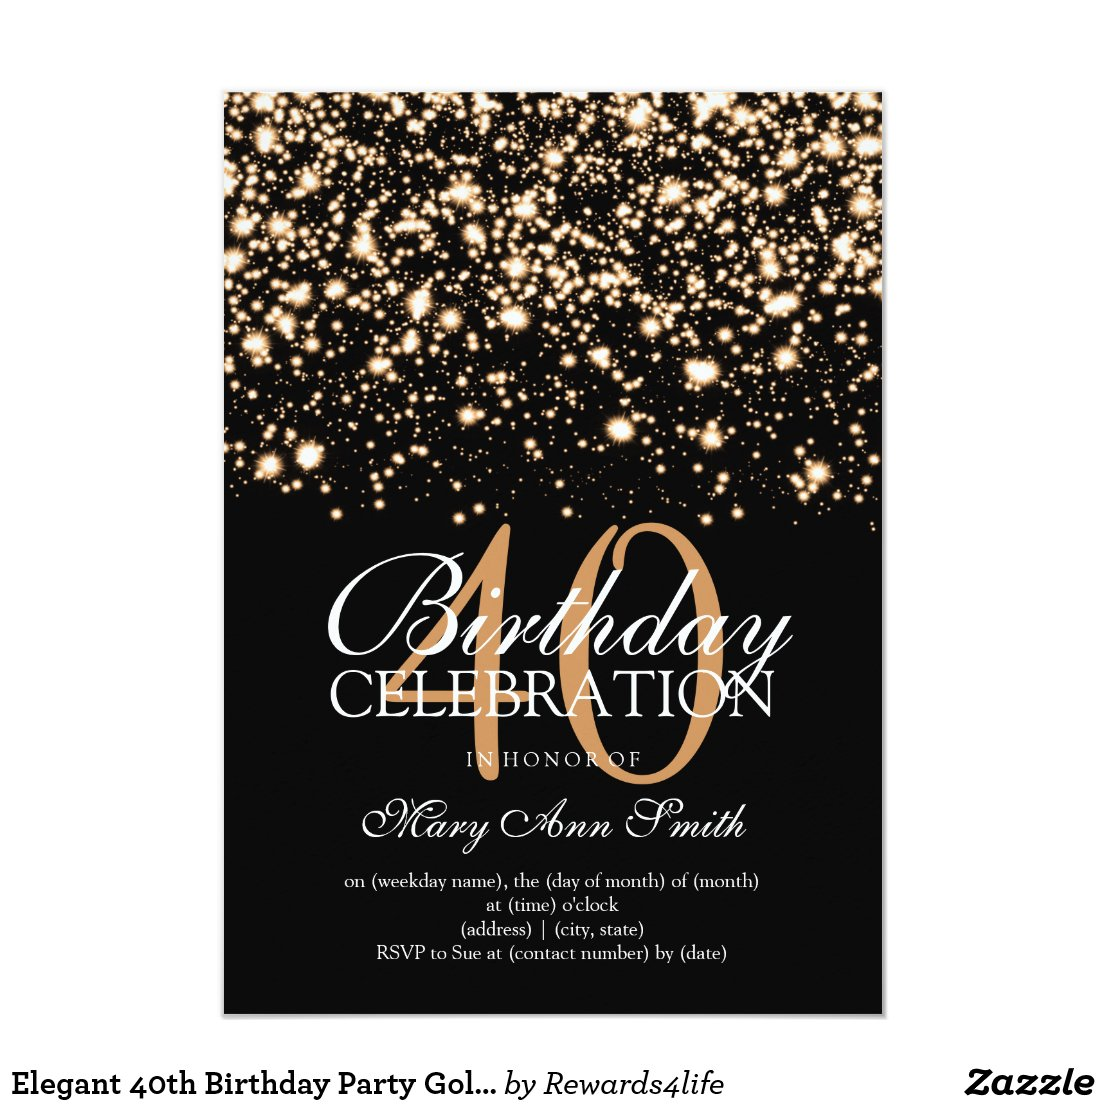 Elegant 40th Birthday Party Gold Midnight Glam